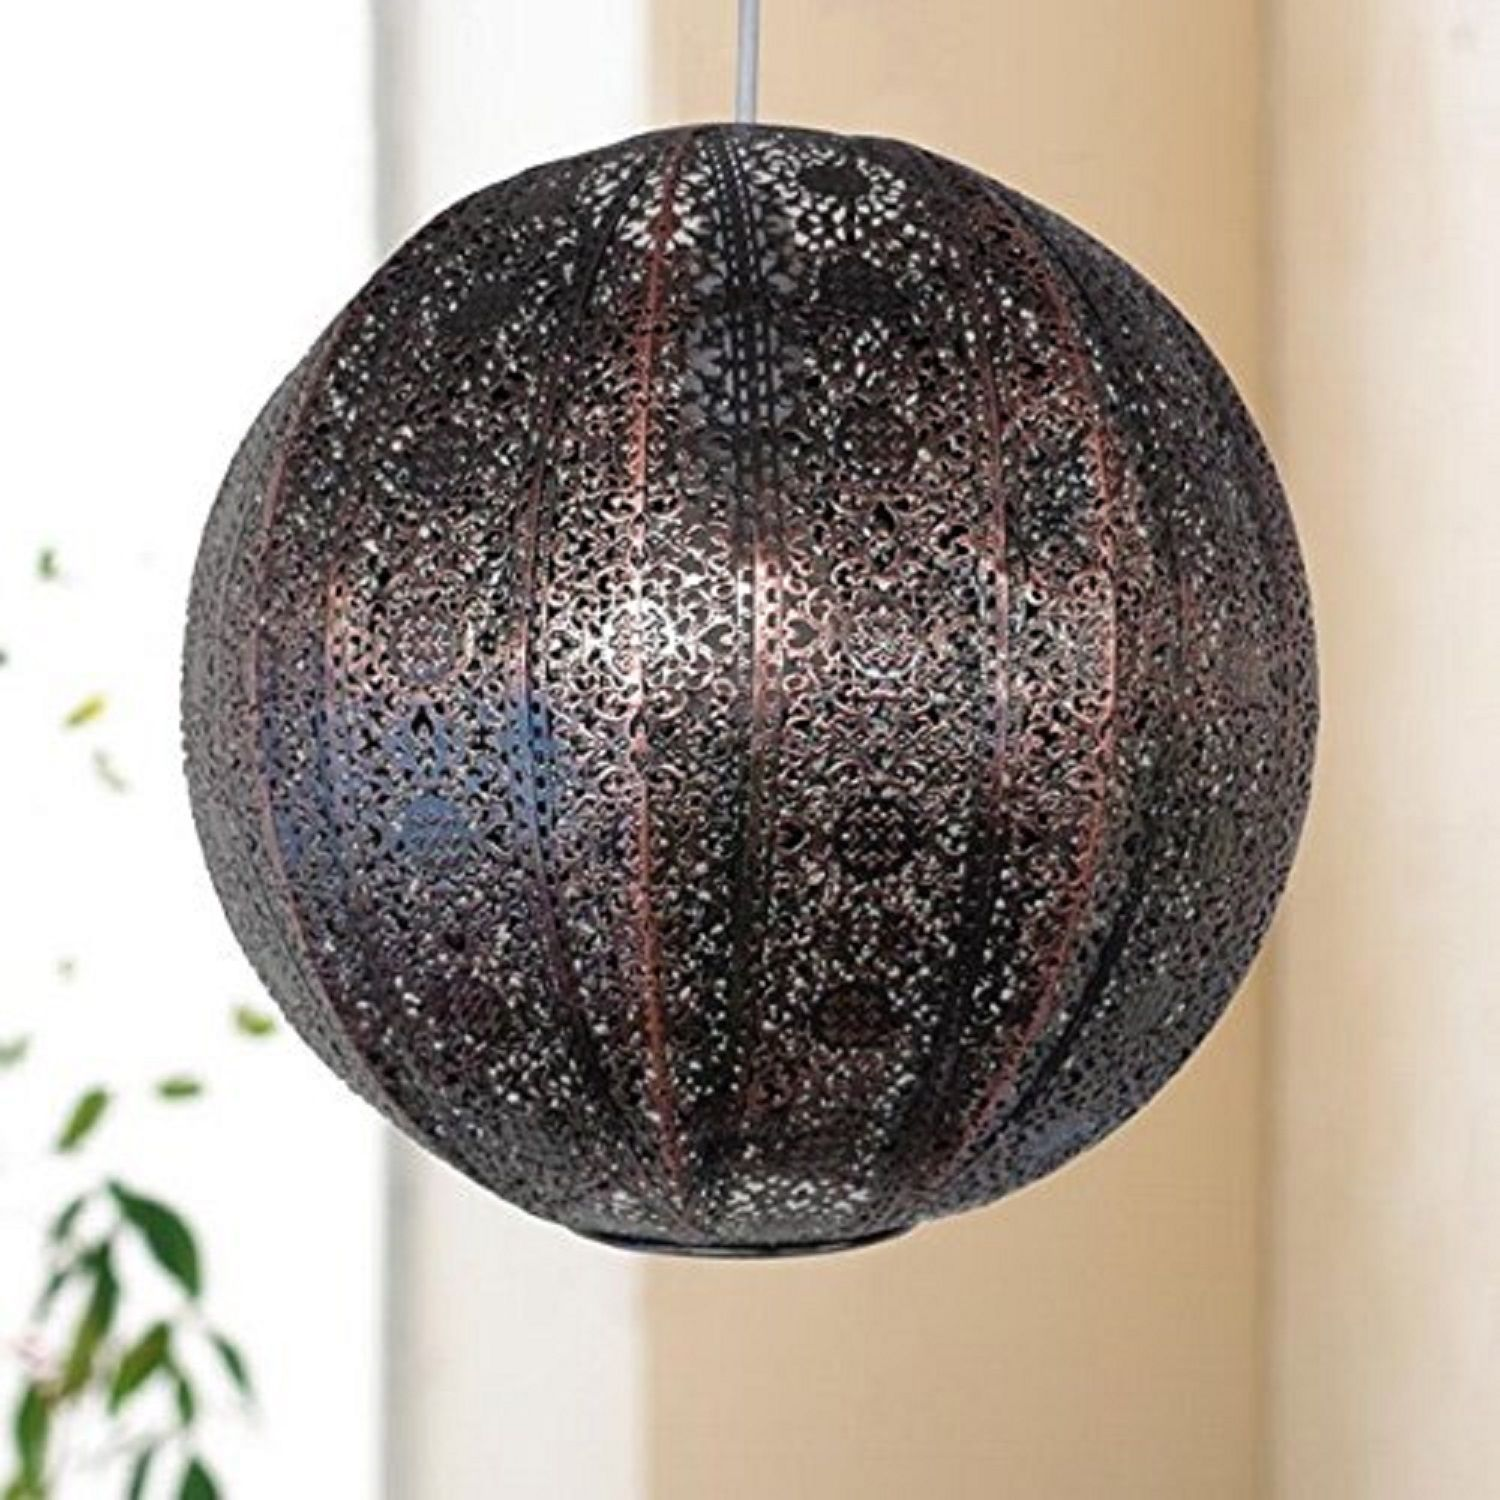 Metal Ball Lamp Shade: Details About Moroccan Style Metal Globe Ceiling Pendant